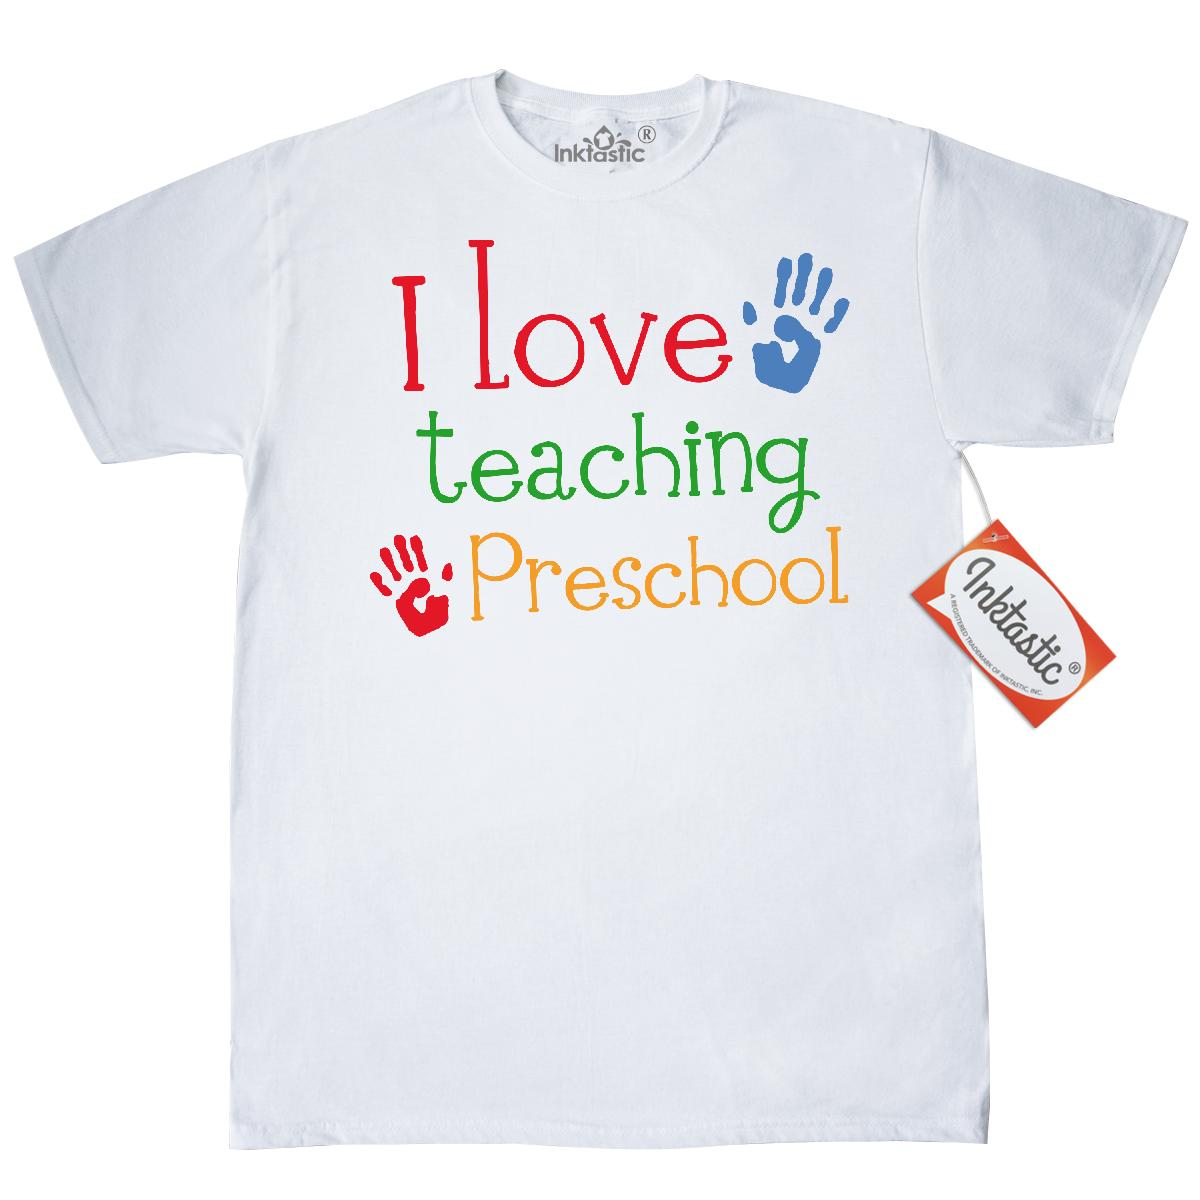 Early Childhood Education love culture track order